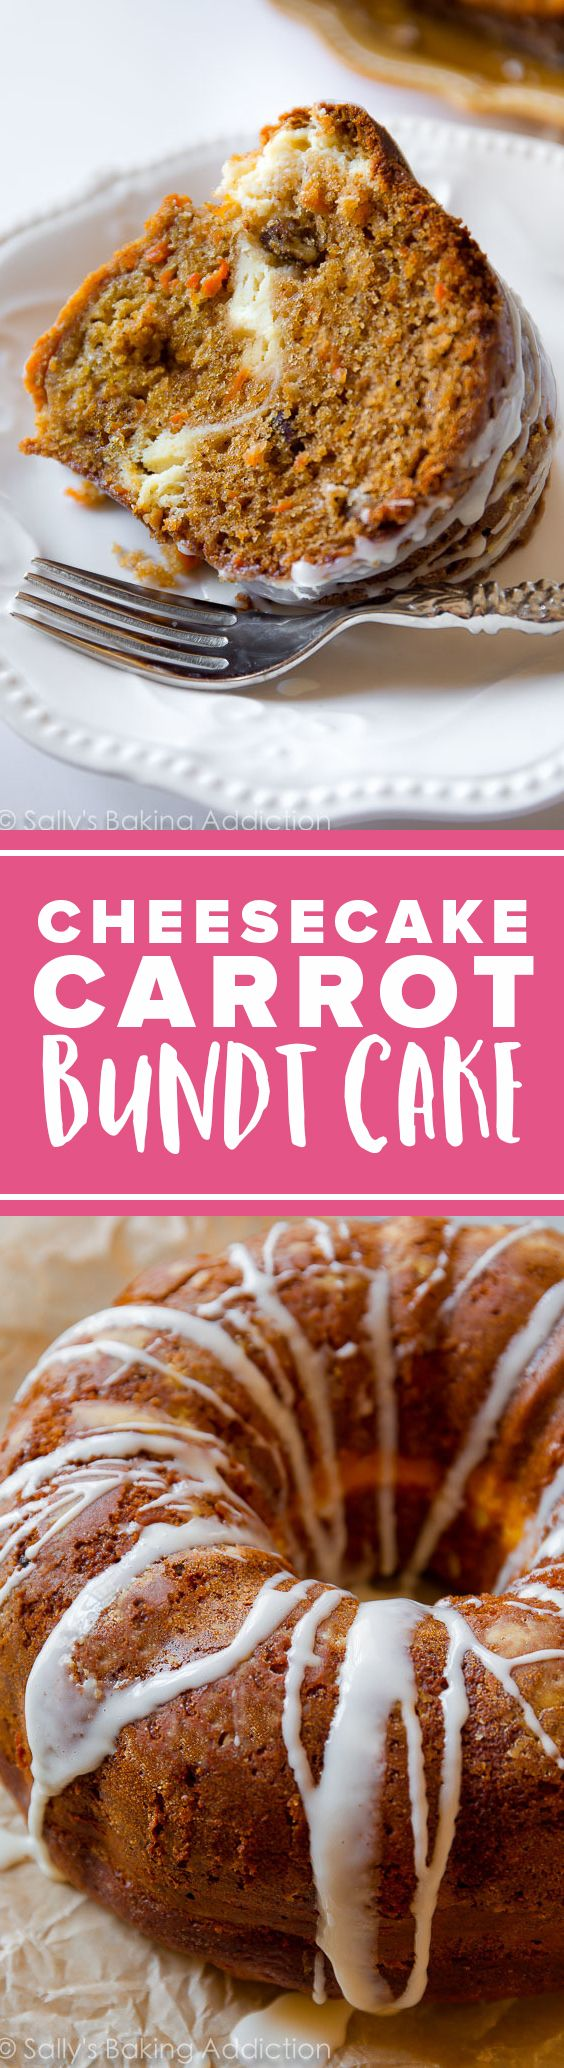 Cheesecake carrot cake bundt cake recipe for Easter and spring baking! The BEST super moist carrot cake! Recipe on sallysbakingaddiction.com